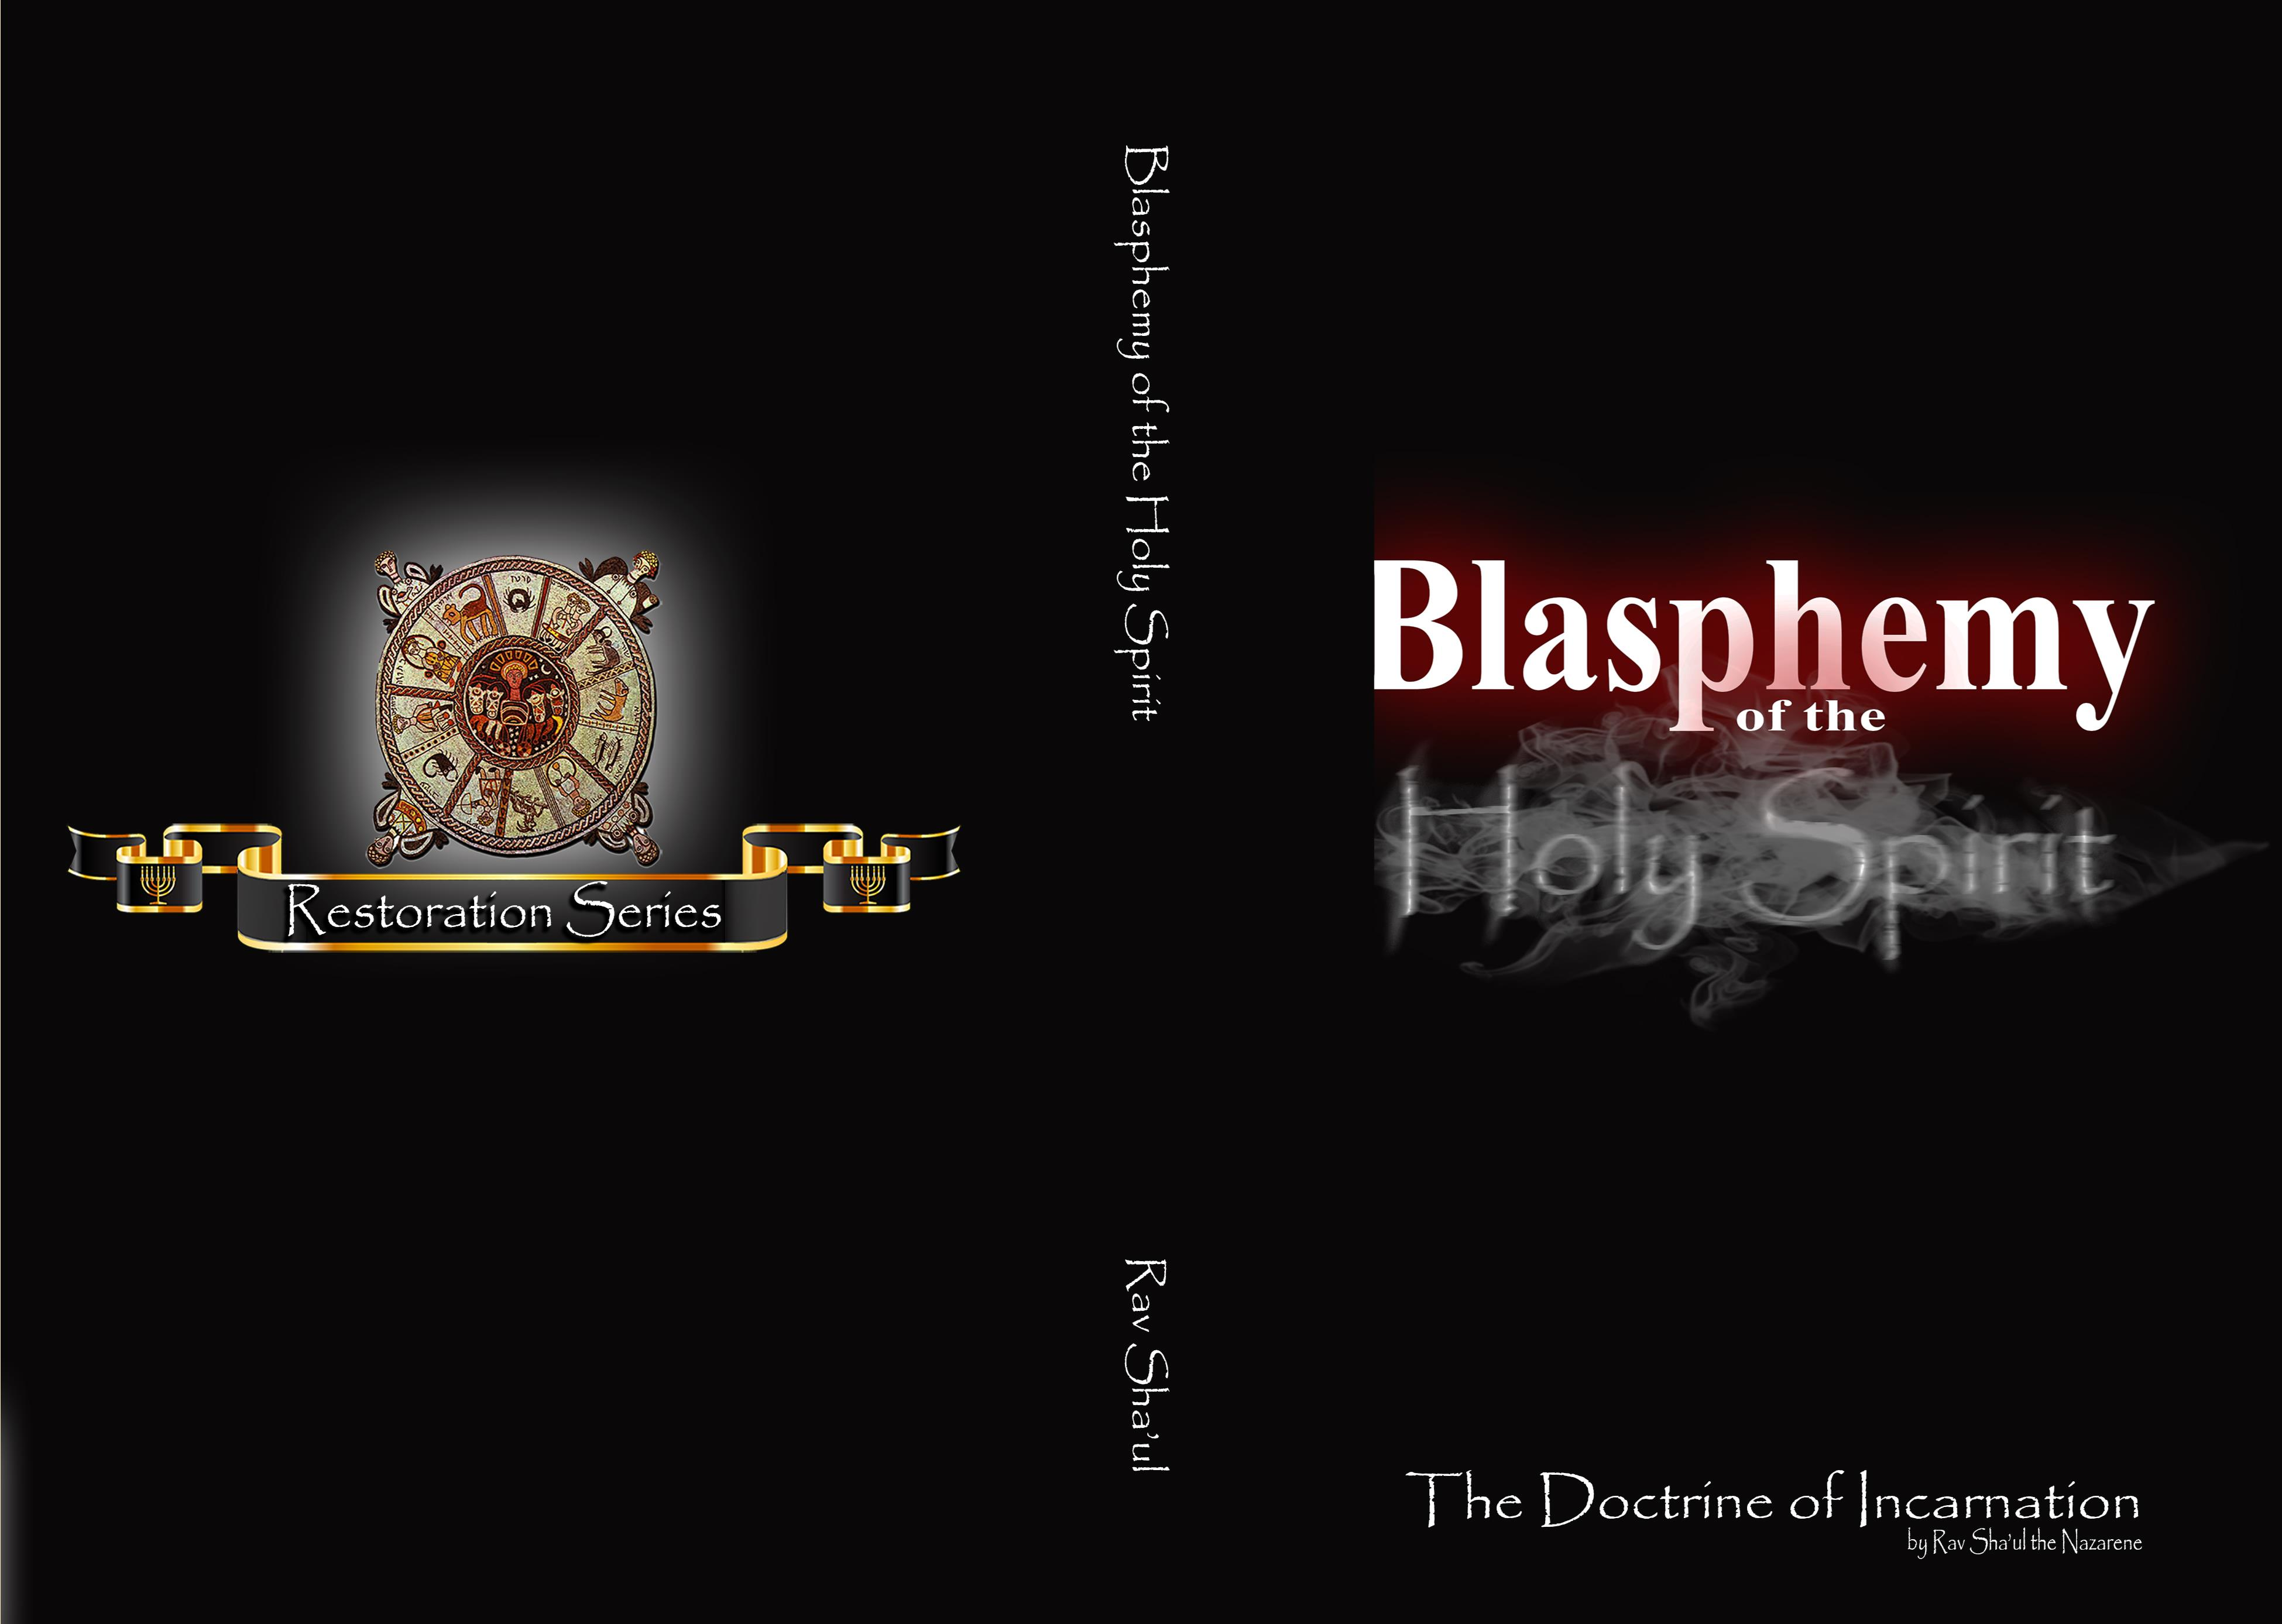 Blasphemy of the Holy Spirit cover image